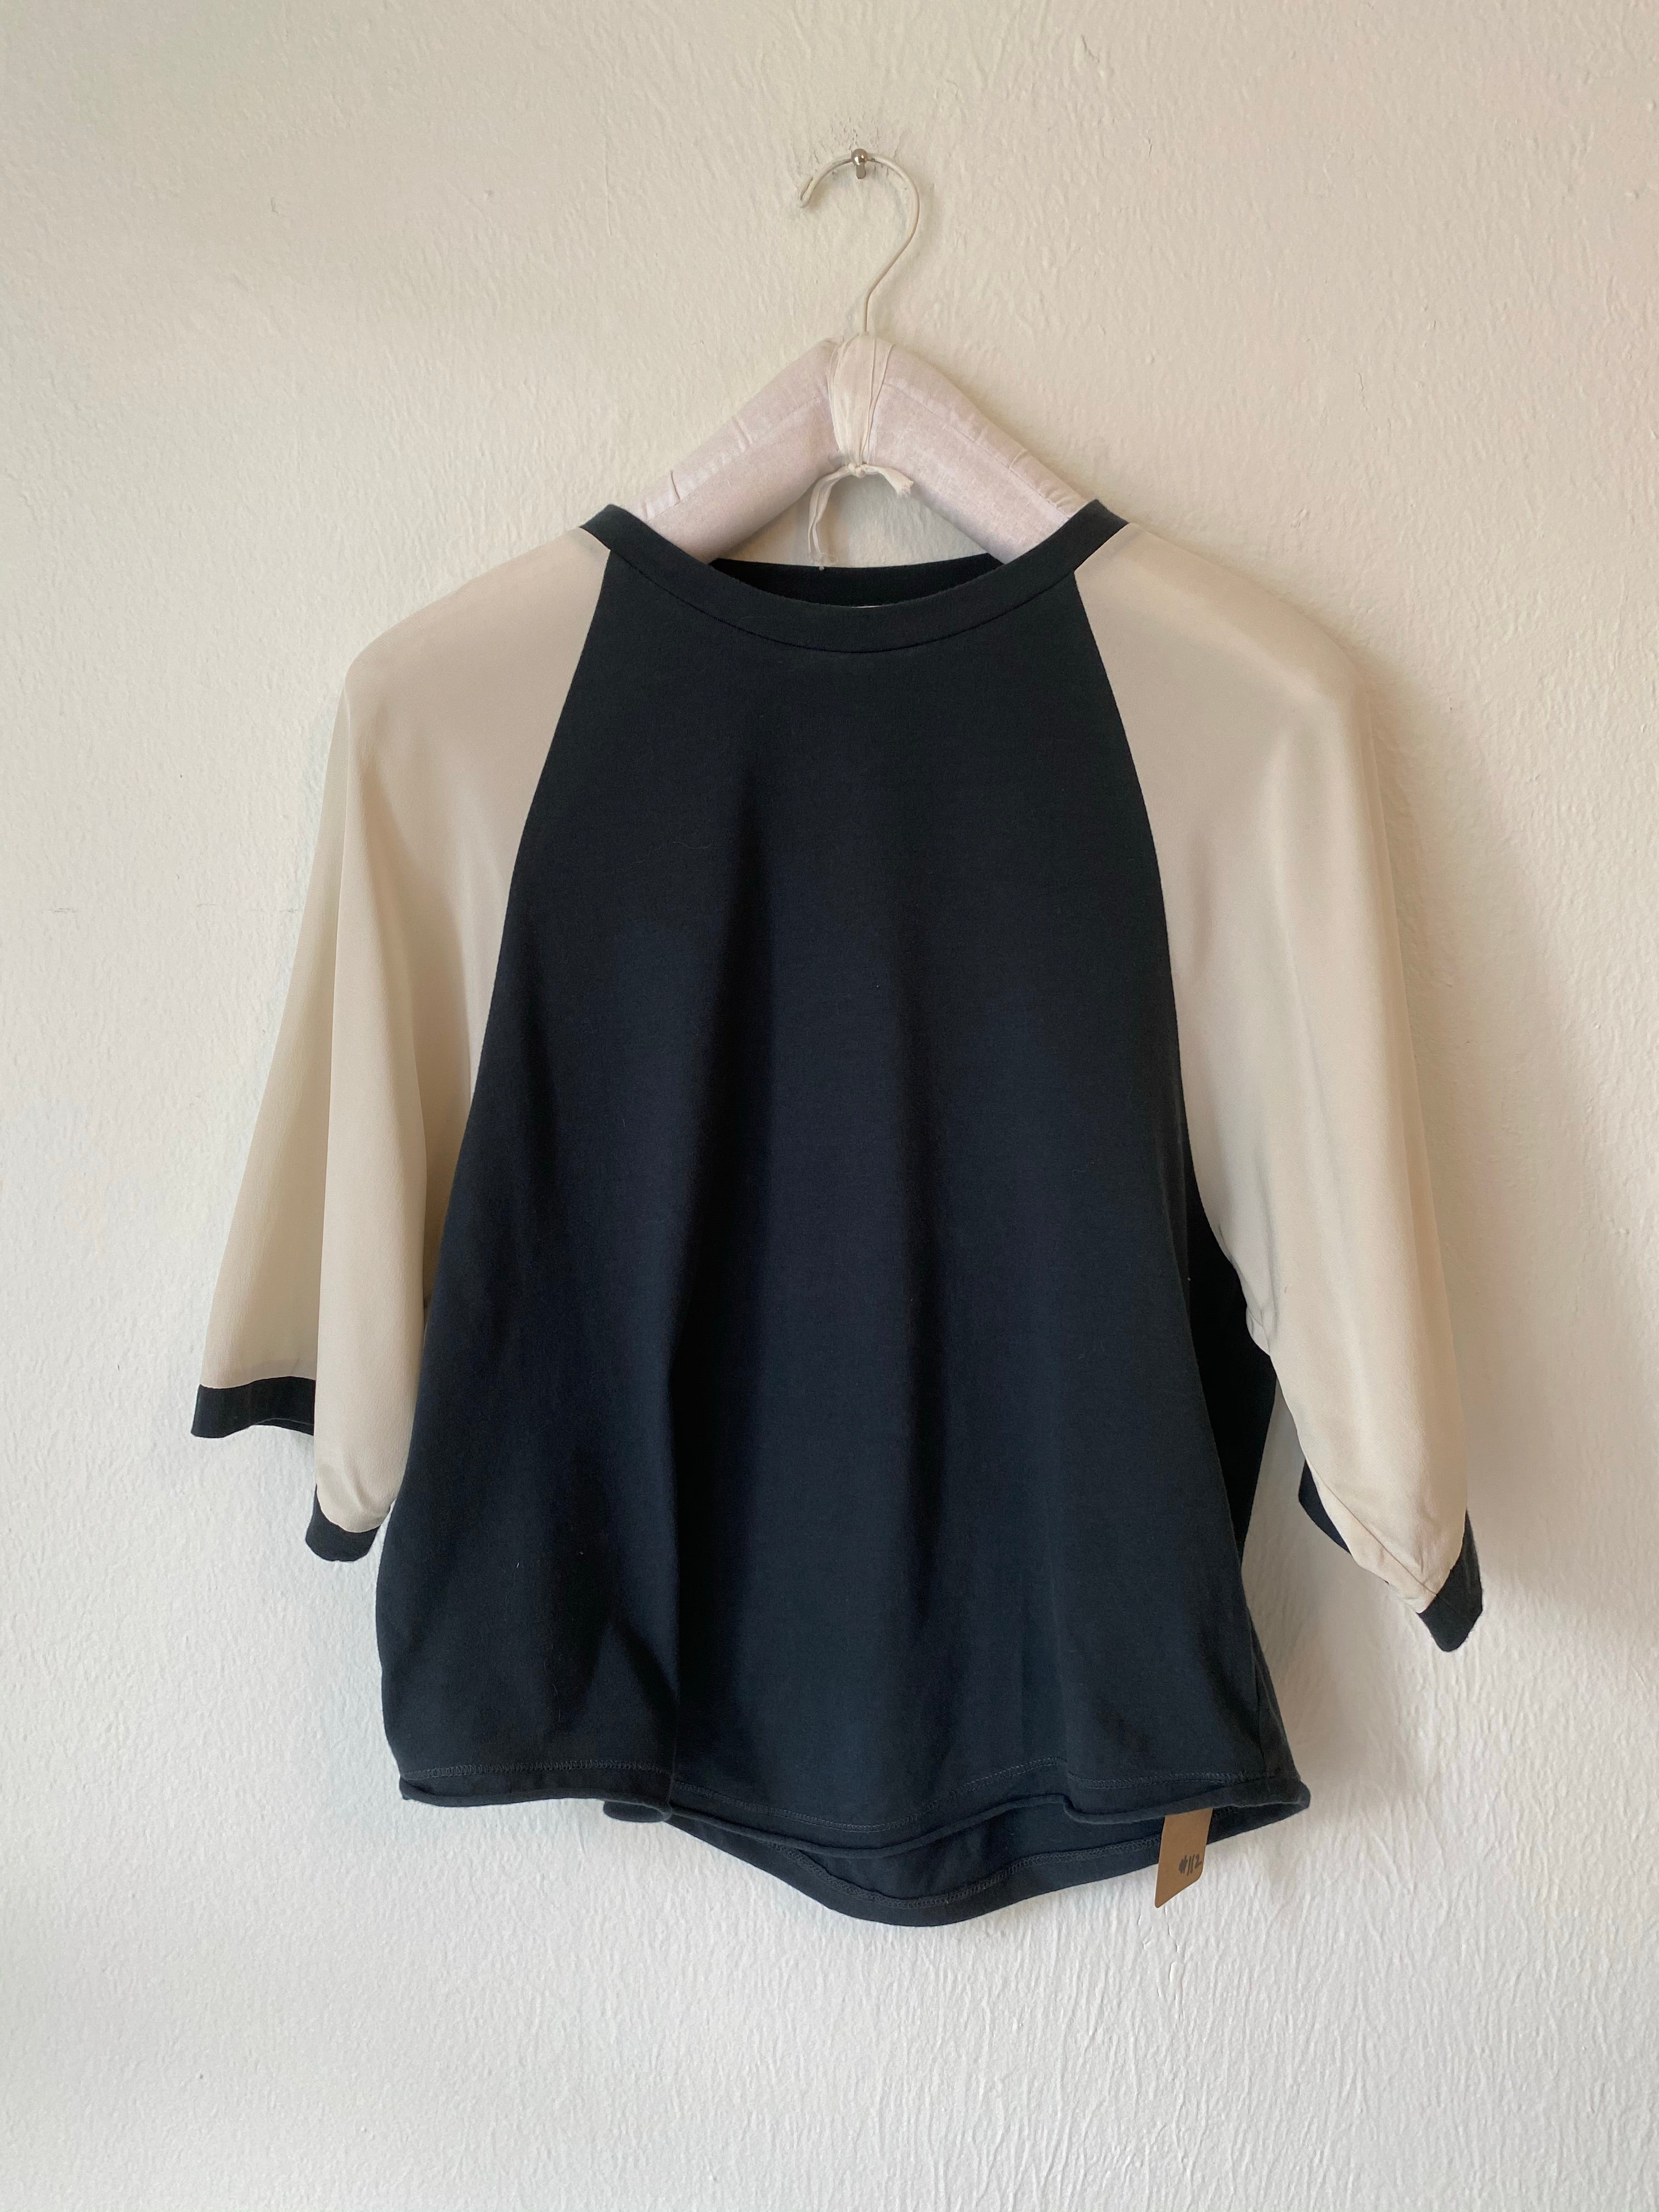 Phillip Lim Blouse